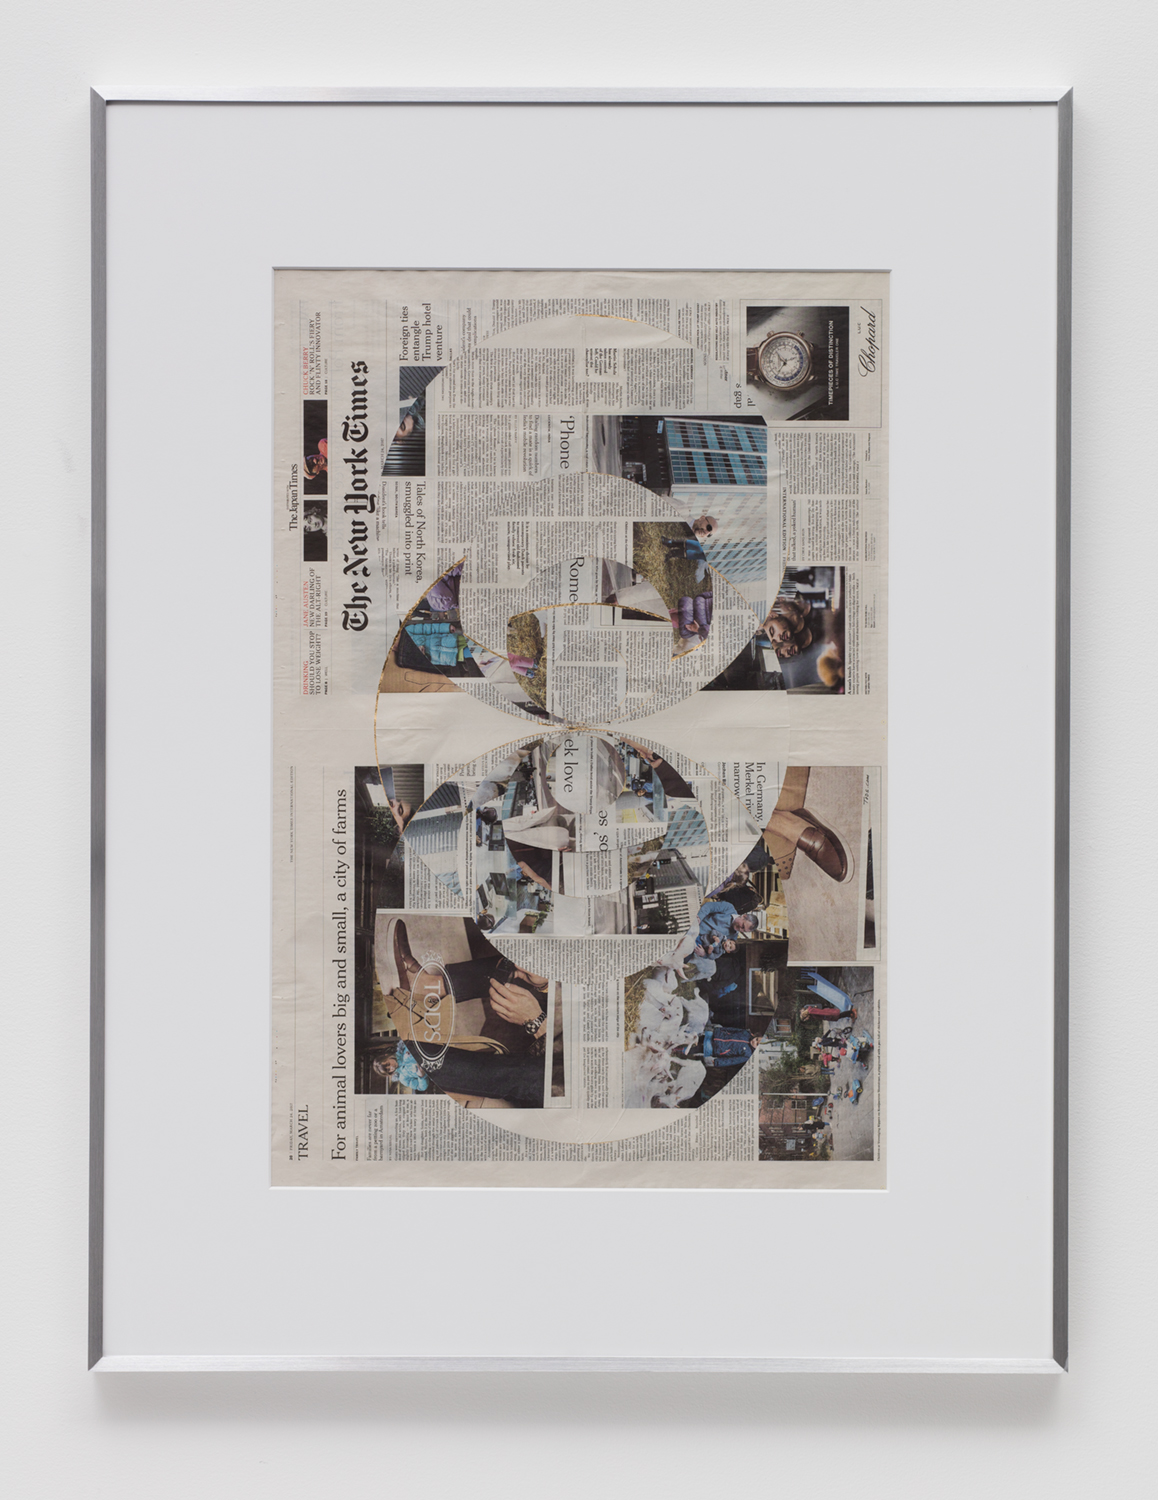 Blind Collage (Four 180º Rotations, The New York Times International Edition Distributed with The Japan Times, Friday, March 24, 2017)   2017  Newspaper, tape, and 22 karat gold leaf  43 5/8 x 33 1/8 inches   Blind Collages, 2017–    Transparencies, 2017    Equivalents, 2018